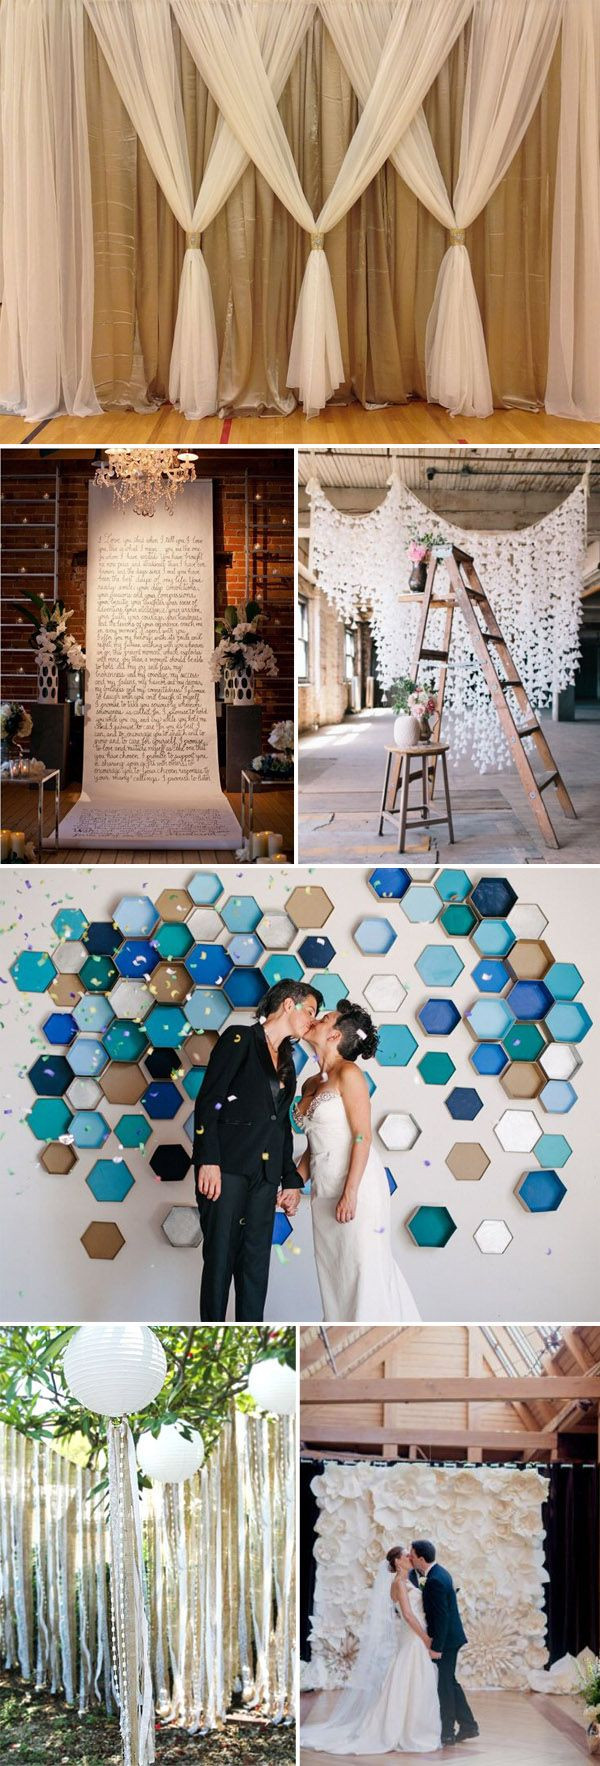 Best ideas about Wedding Backdrop DIY . Save or Pin Best 25 Diy wedding backdrop ideas on Pinterest Now.